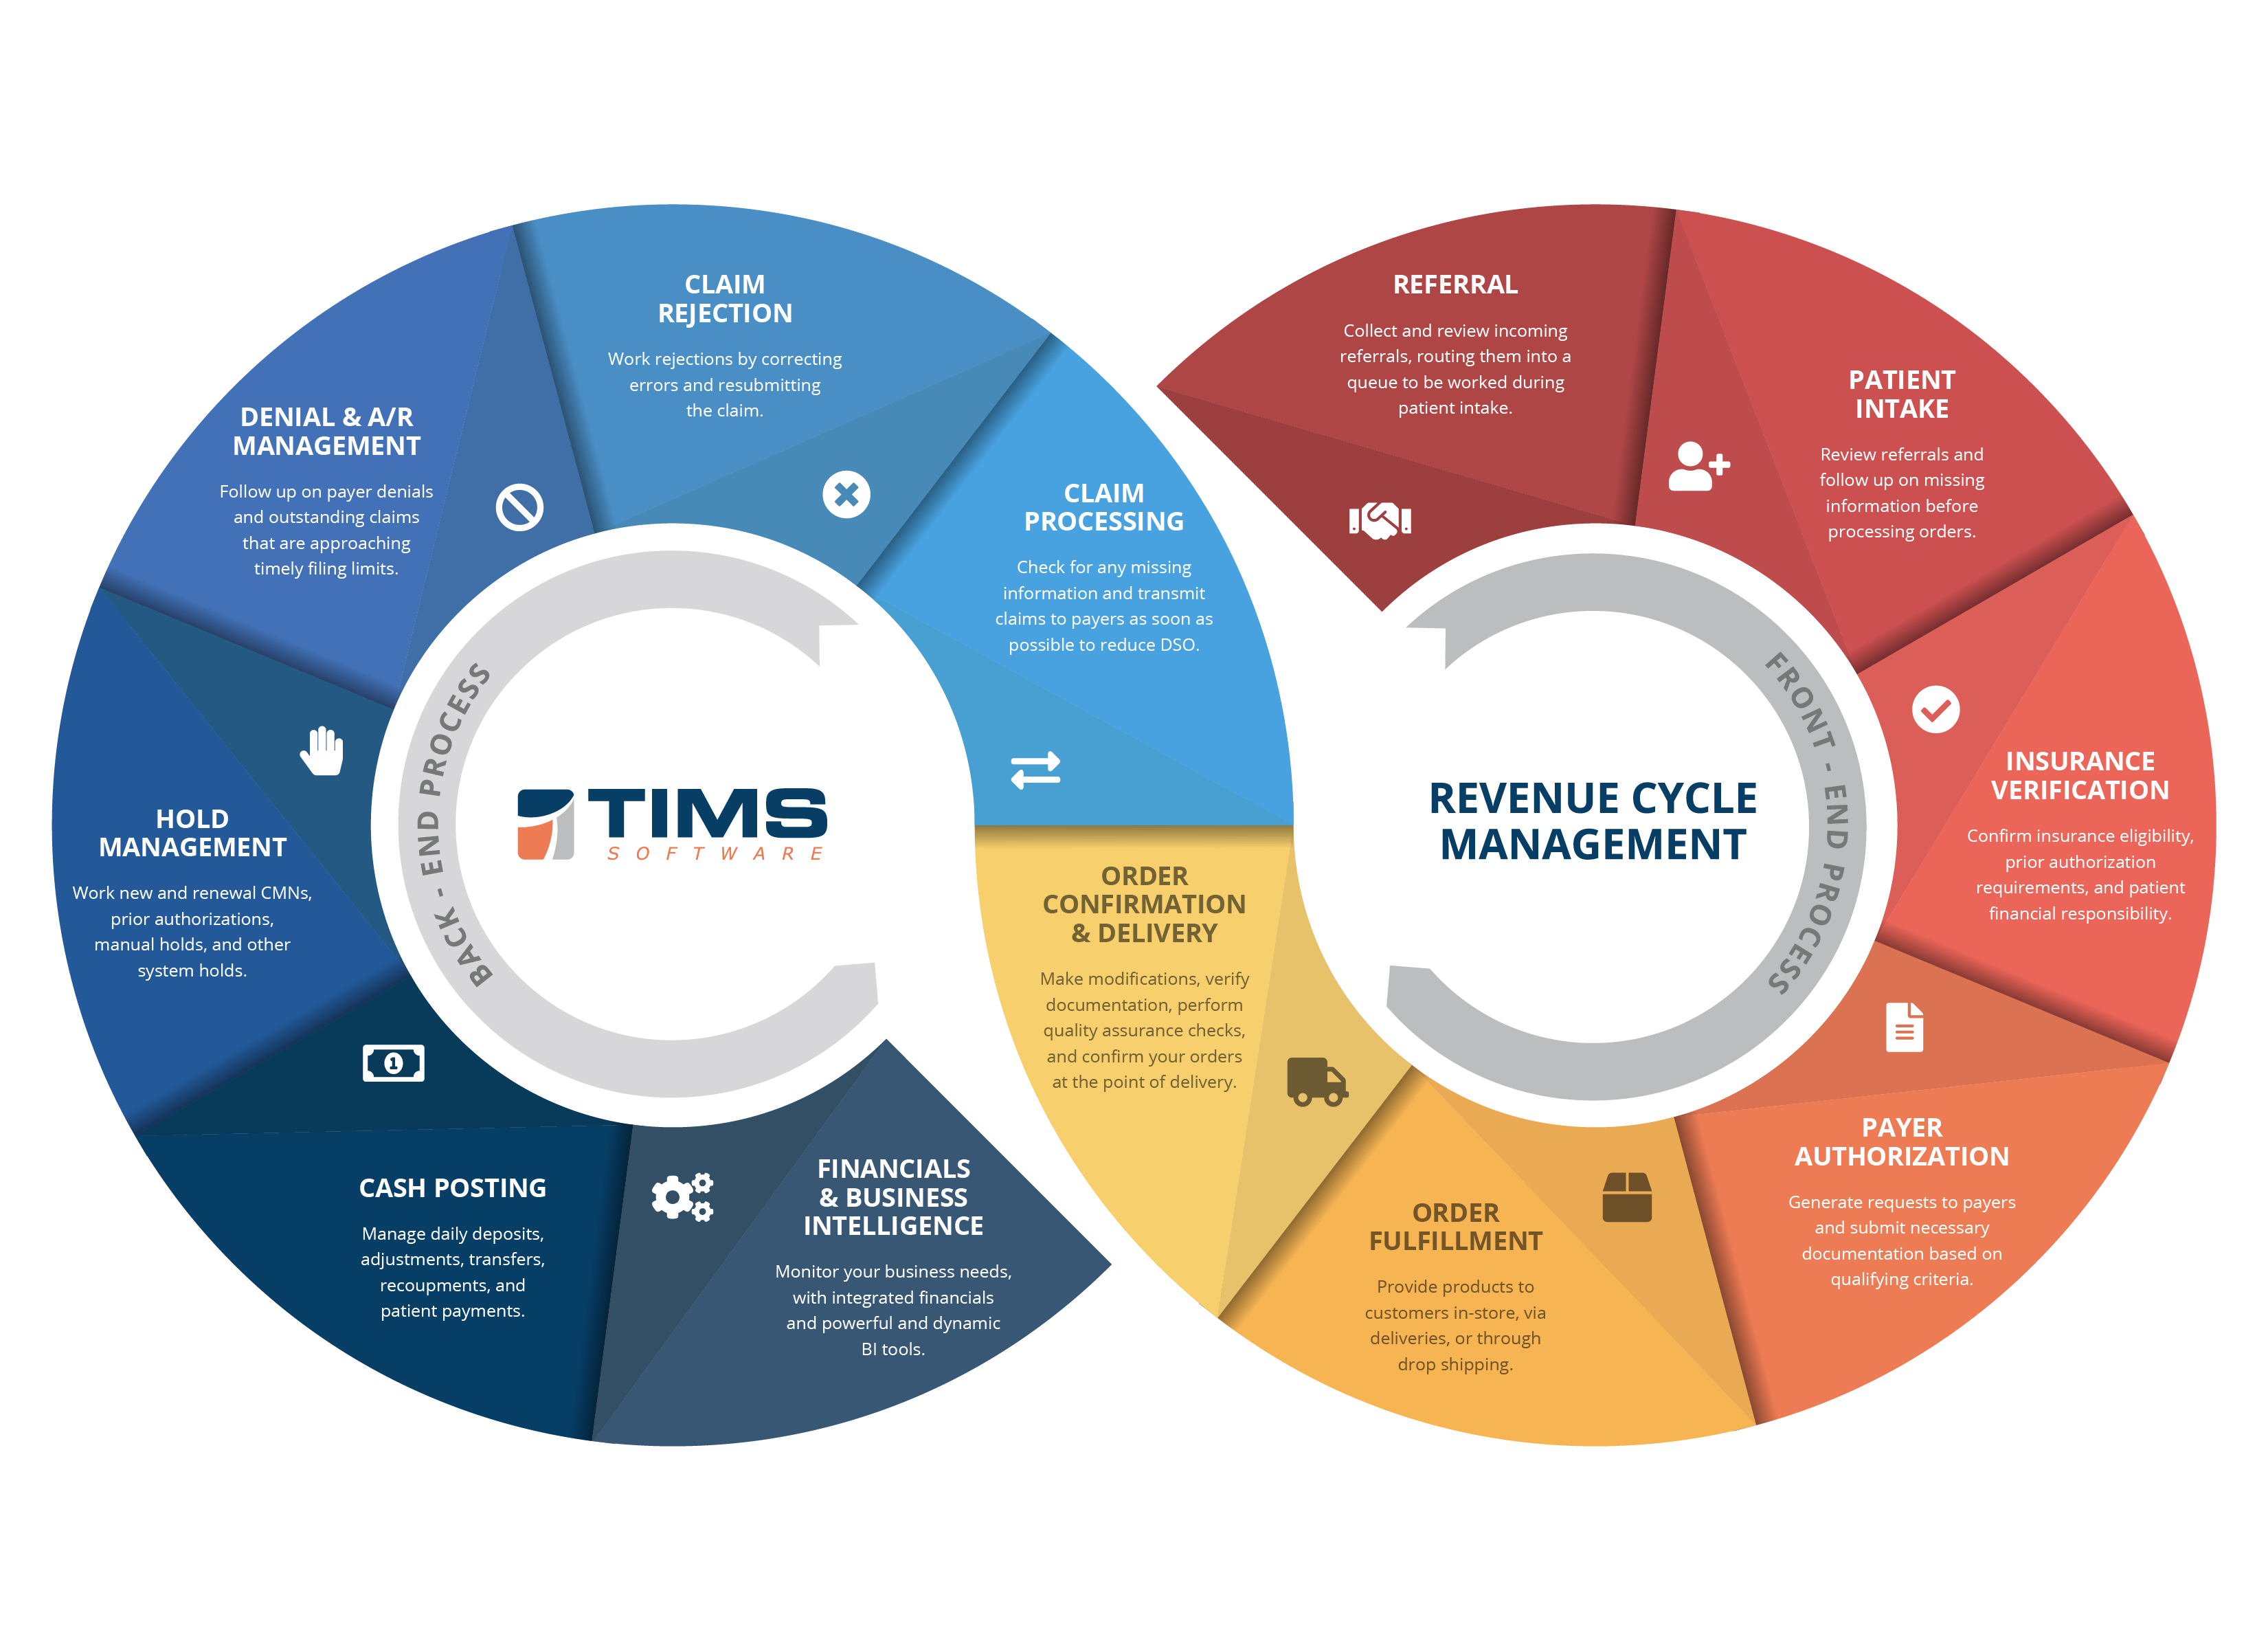 TIMS_Software_Revenue_Cycle_Management_Graphic-2_F_09_2018_Original